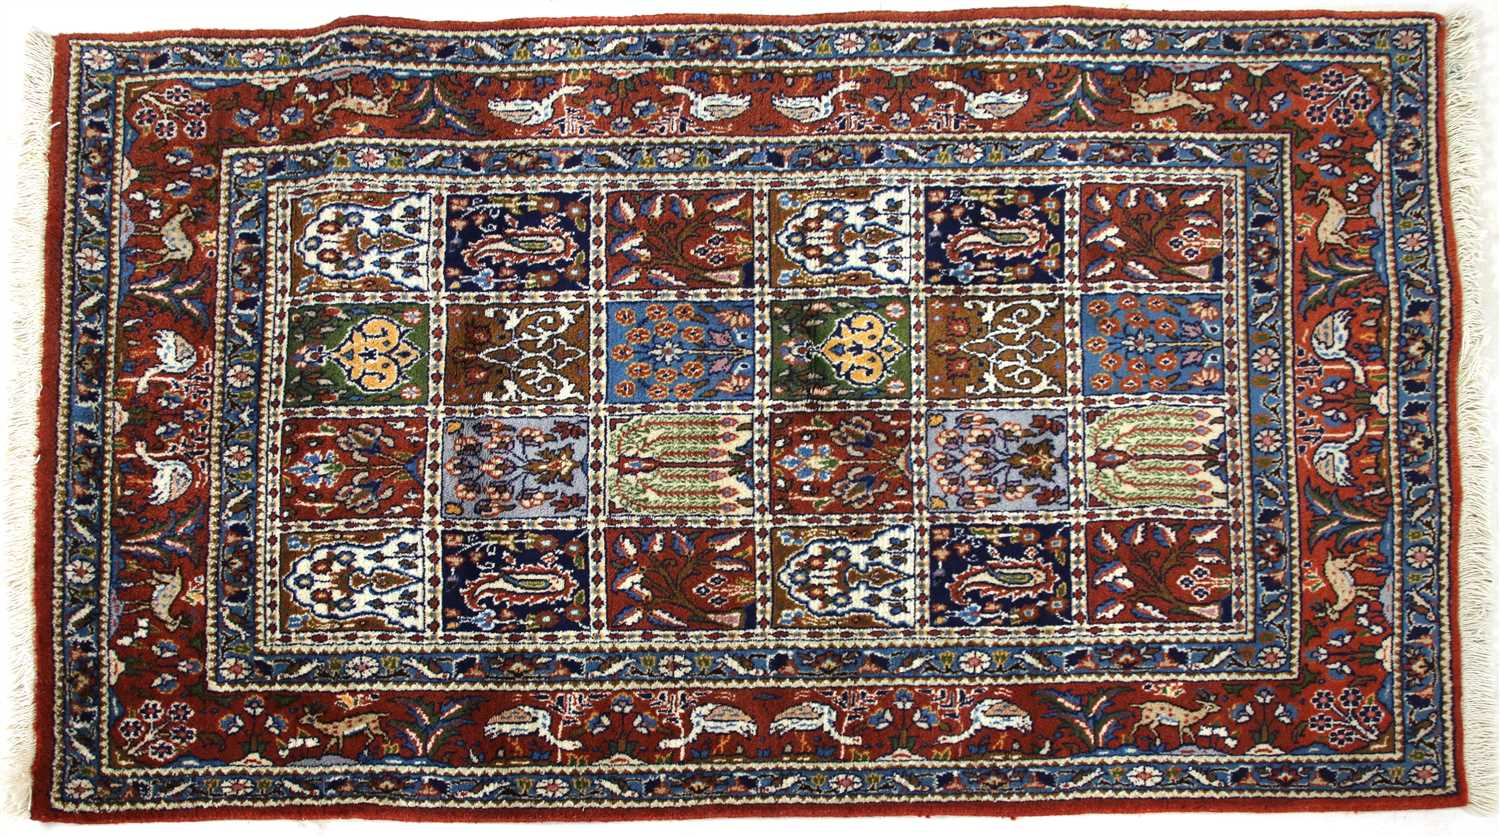 Lot 668 - An Eastern pictorial rug,